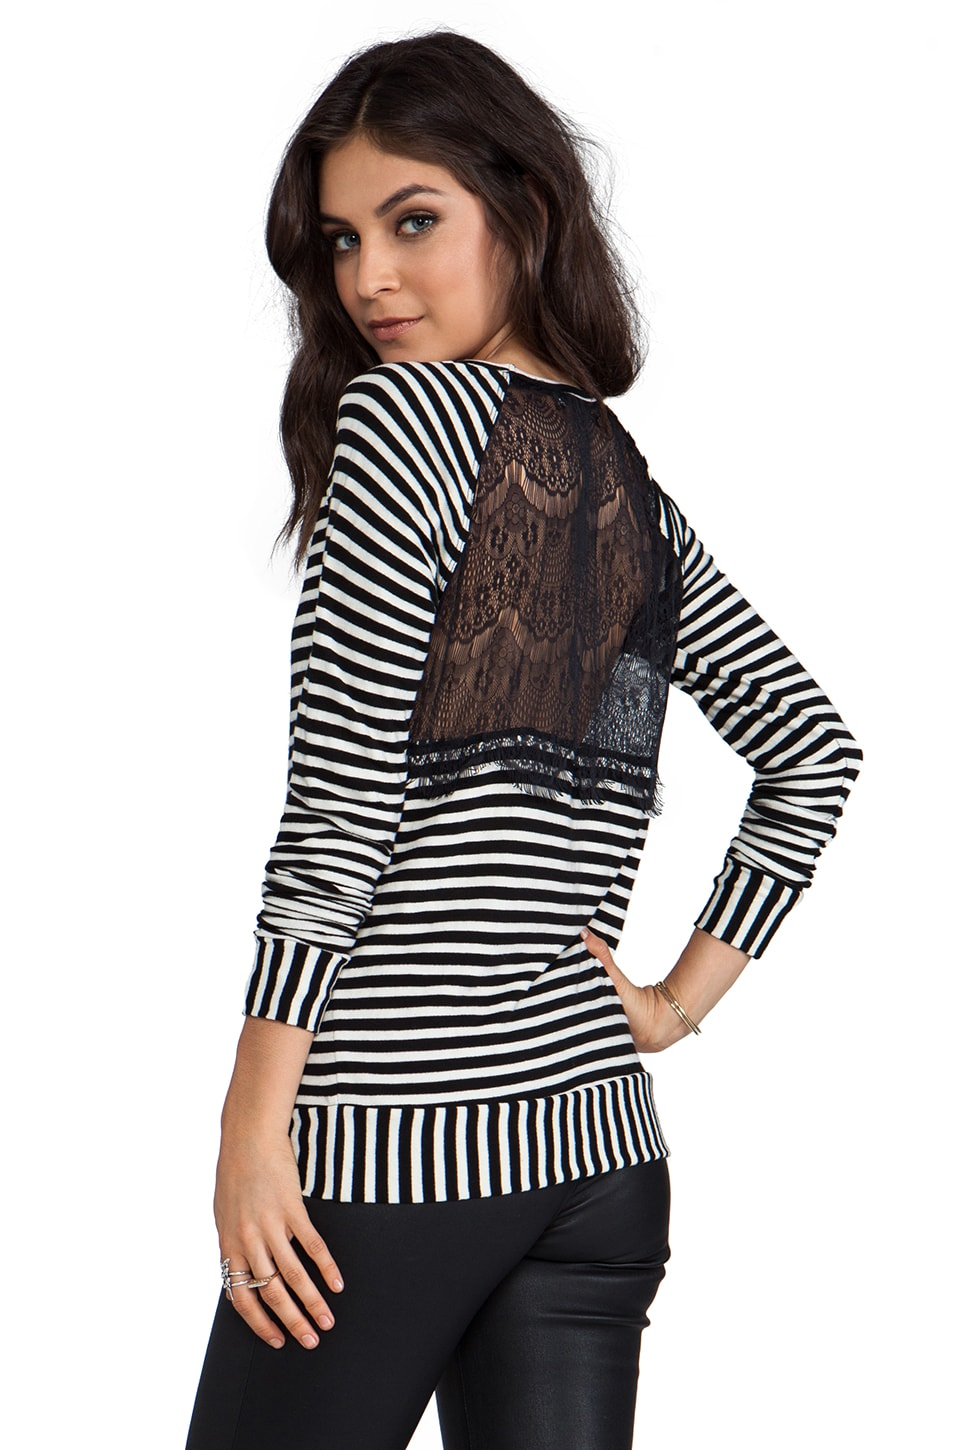 WOODLEIGH Ramona Top en Black/White Stripe